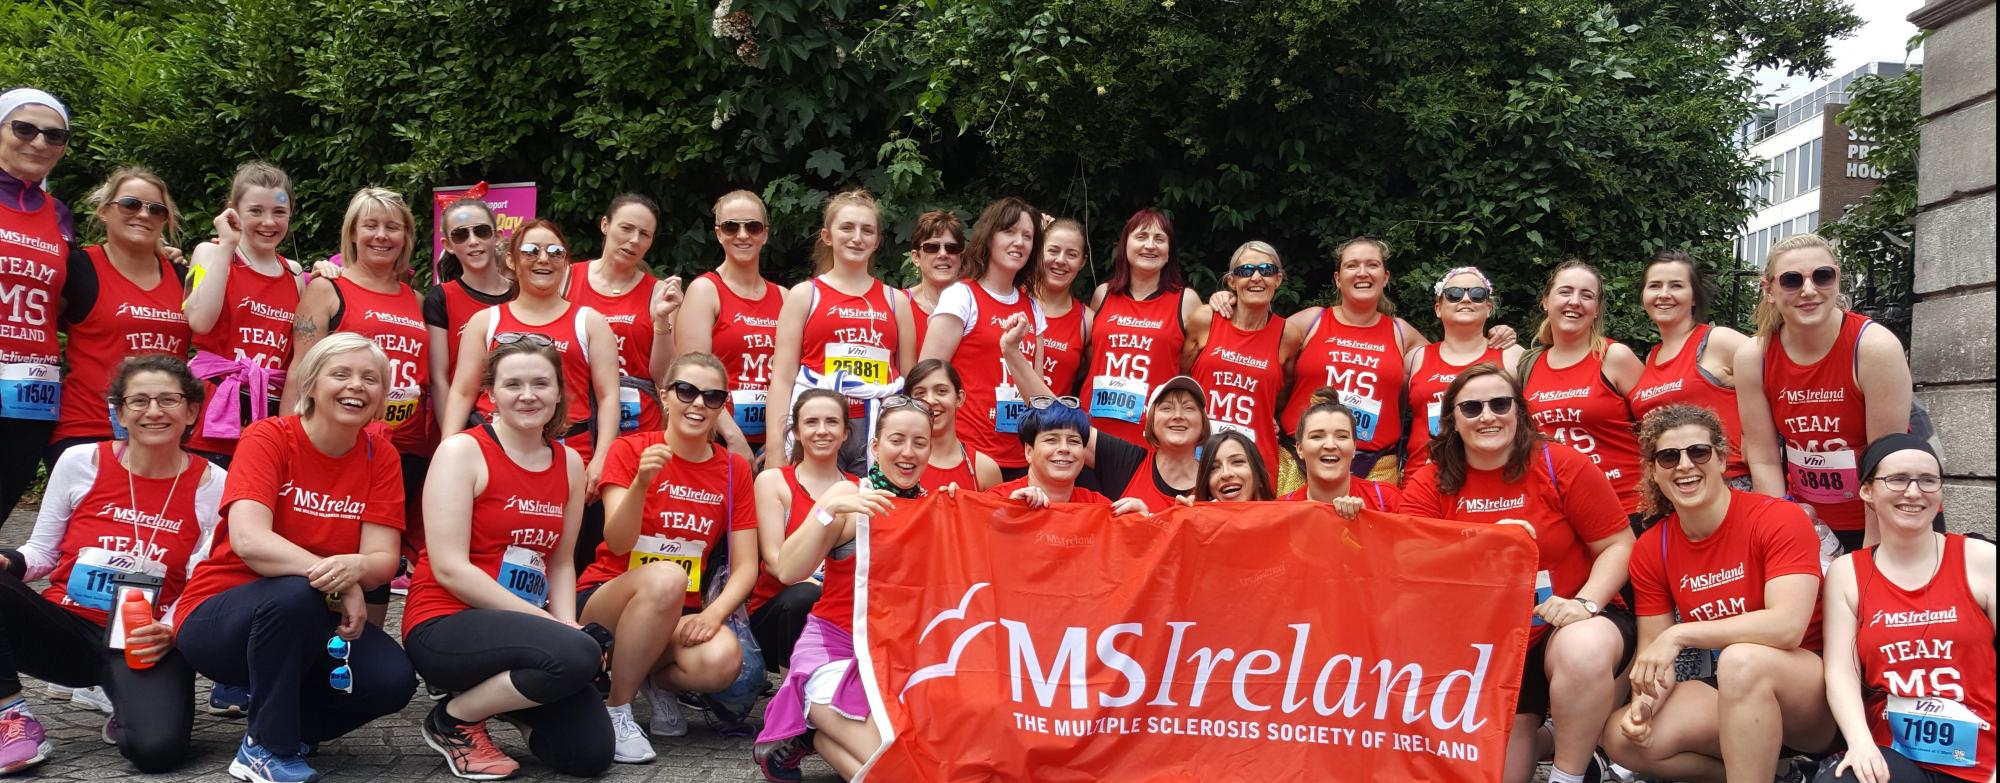 Team MS ireland 2019